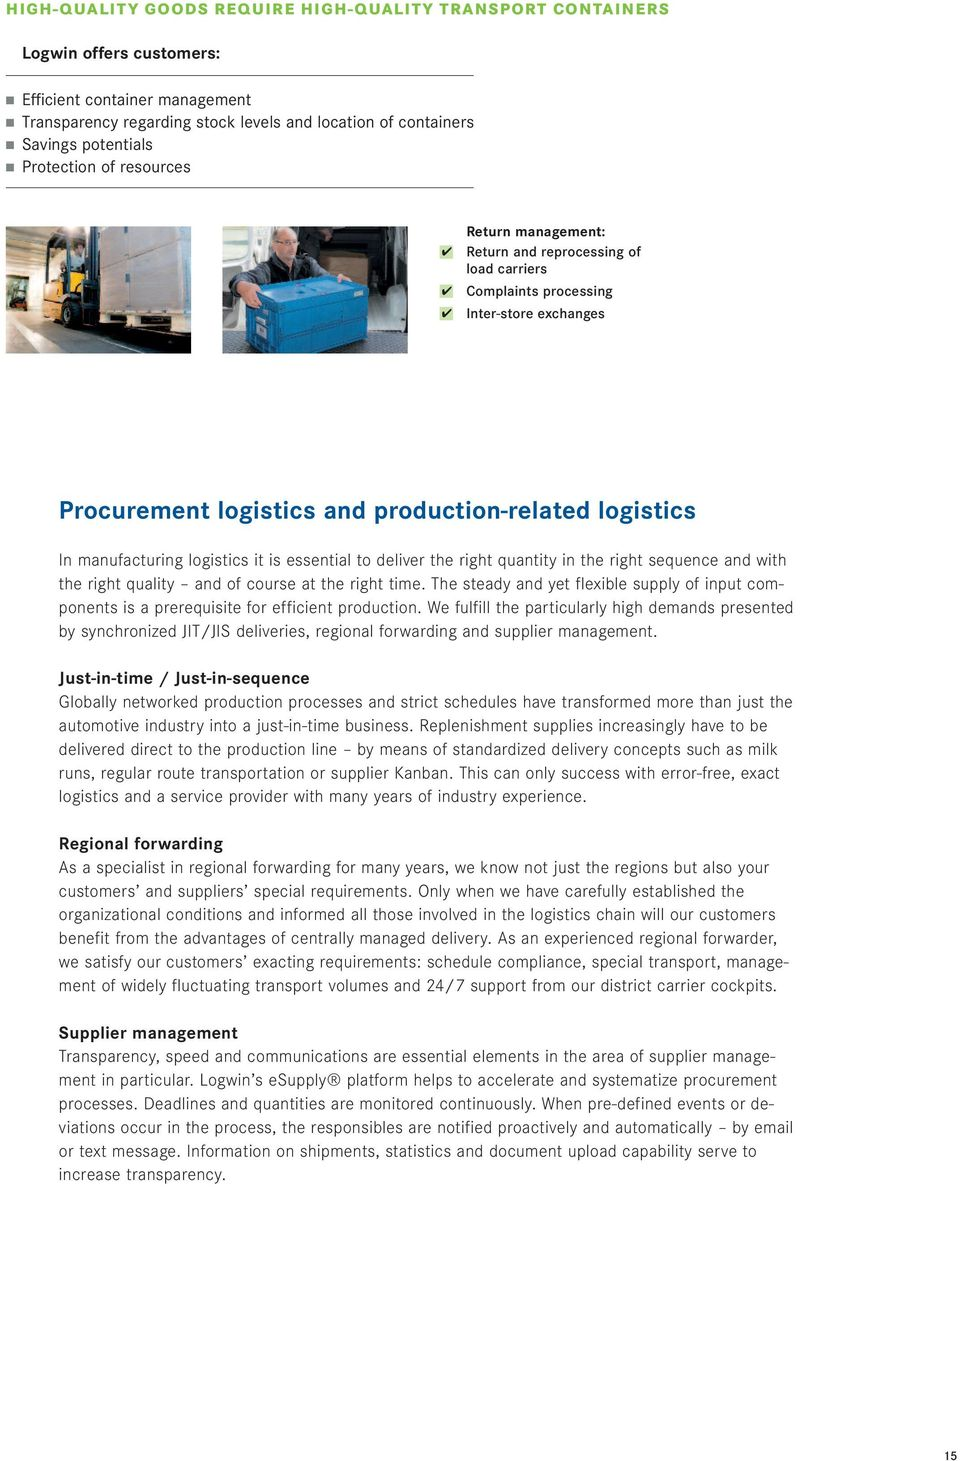 manufacturing logistics it is essential to deliver the right quantity in the right sequence and with the right quality and of course at the right time.